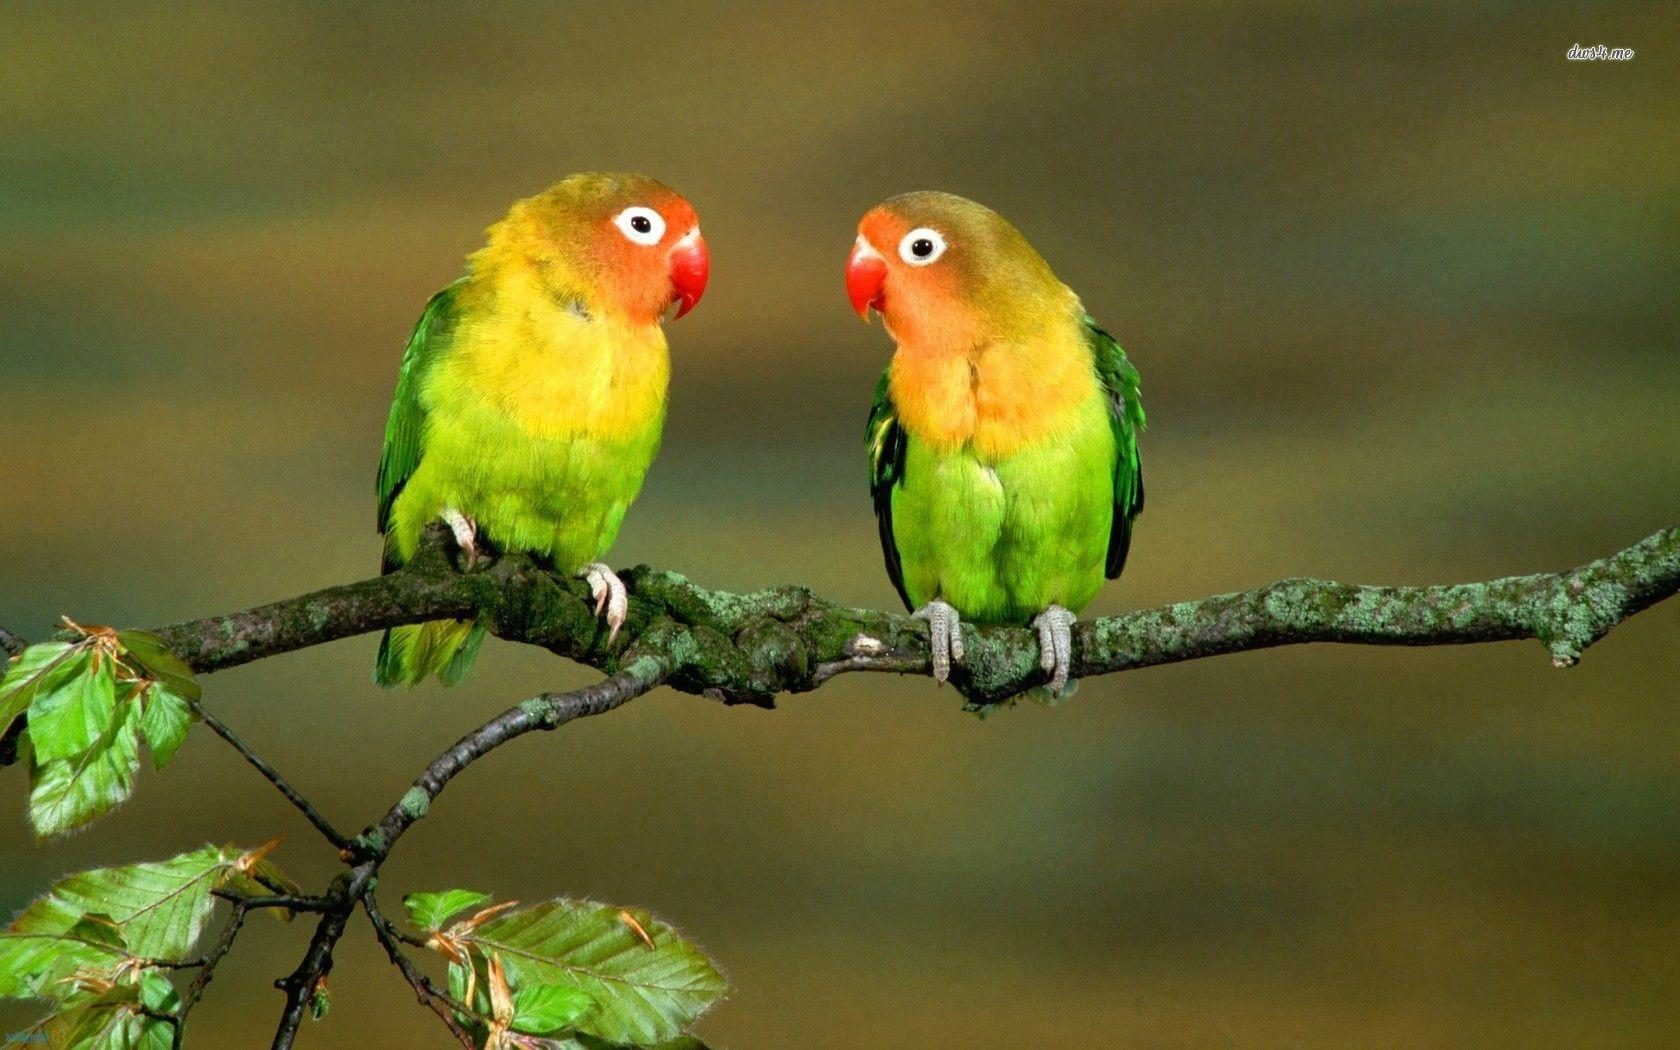 Love Birds Wallpaper In Hd : Lovebirds Wallpapers - Wallpaper cave